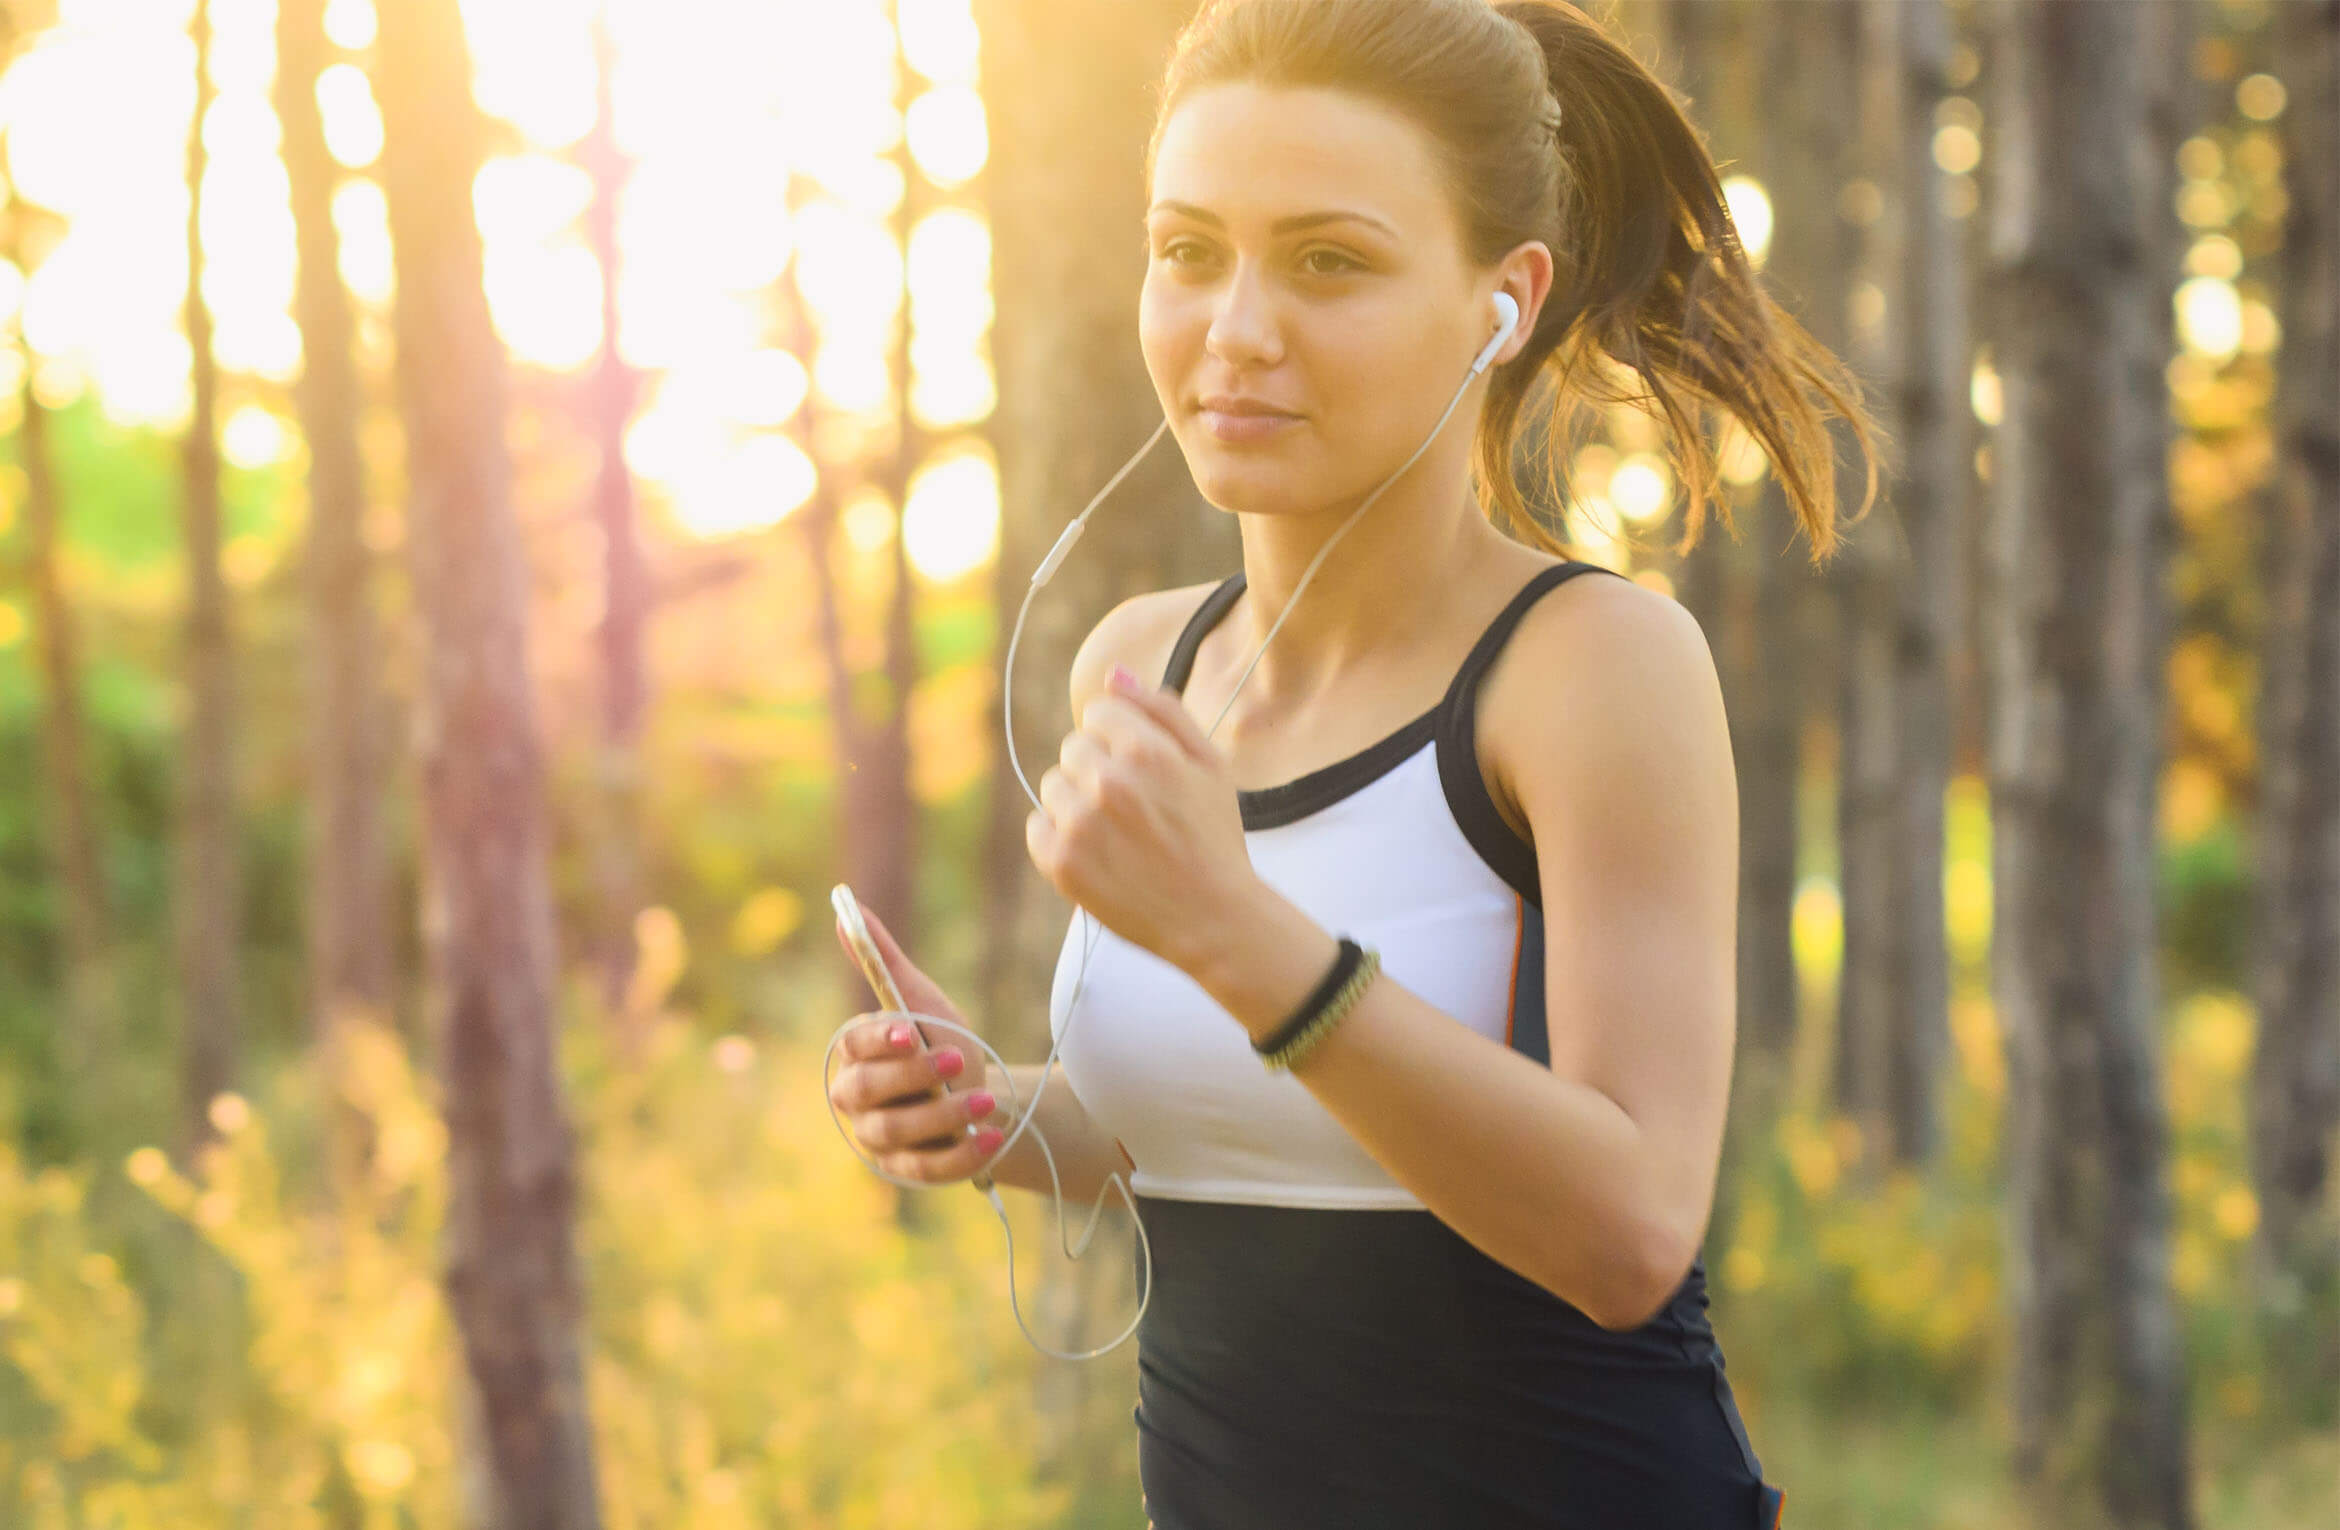 New study finds anxiety sensitivity can predict physical activity levels